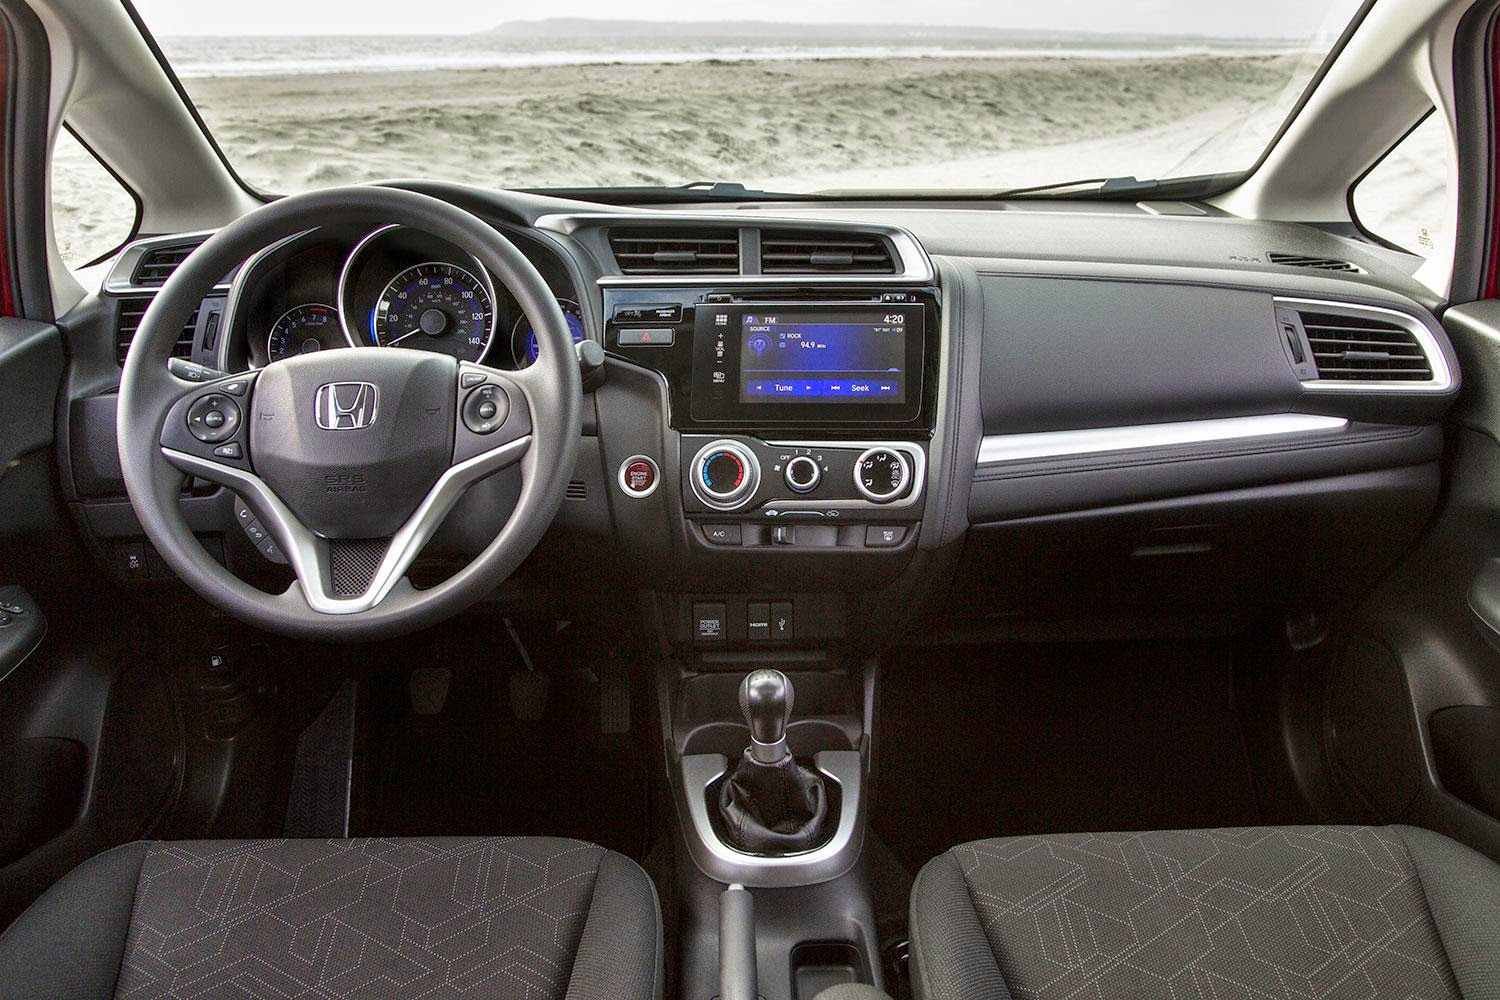 Honda HR-V 2015 Price, Design, Features and Performance